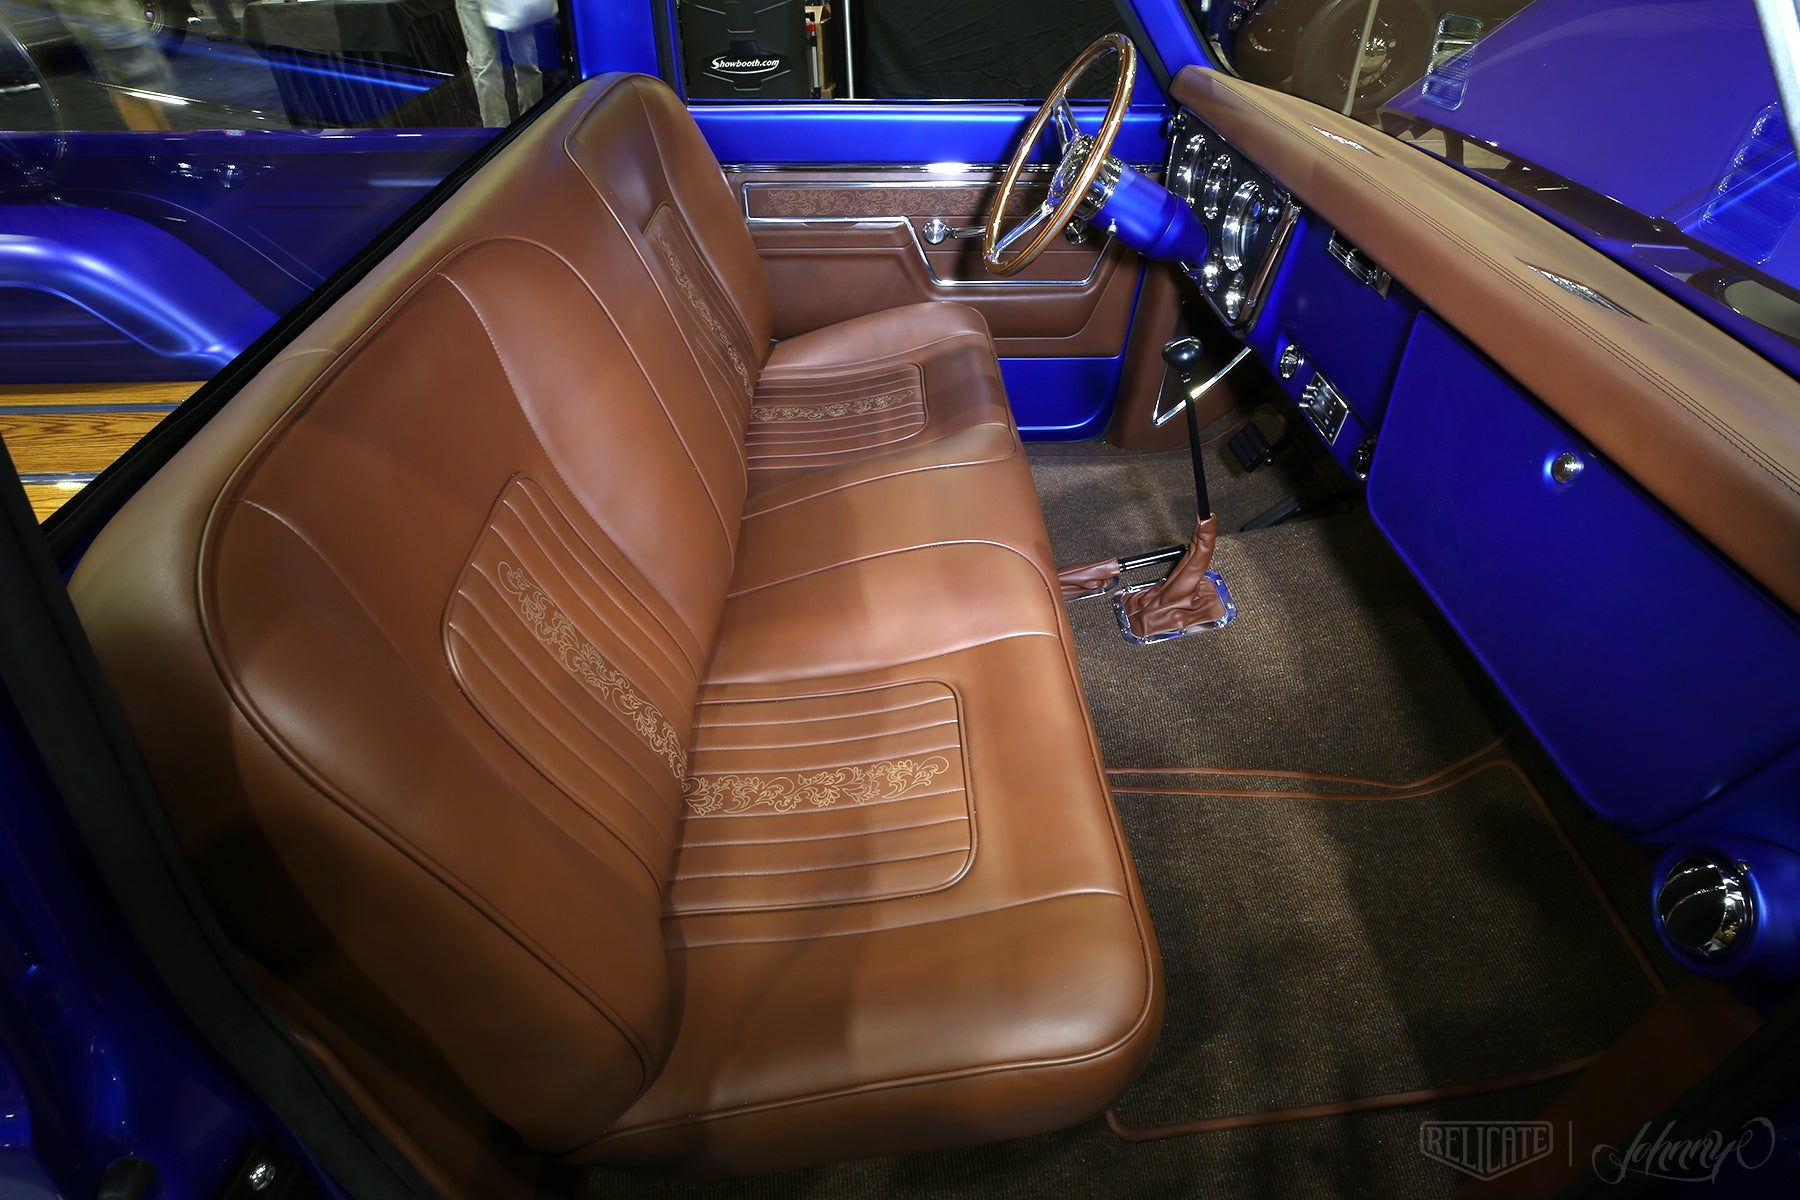 1970 Chevrolet C10 pickup truck with Relicate leather custom interior bench seat